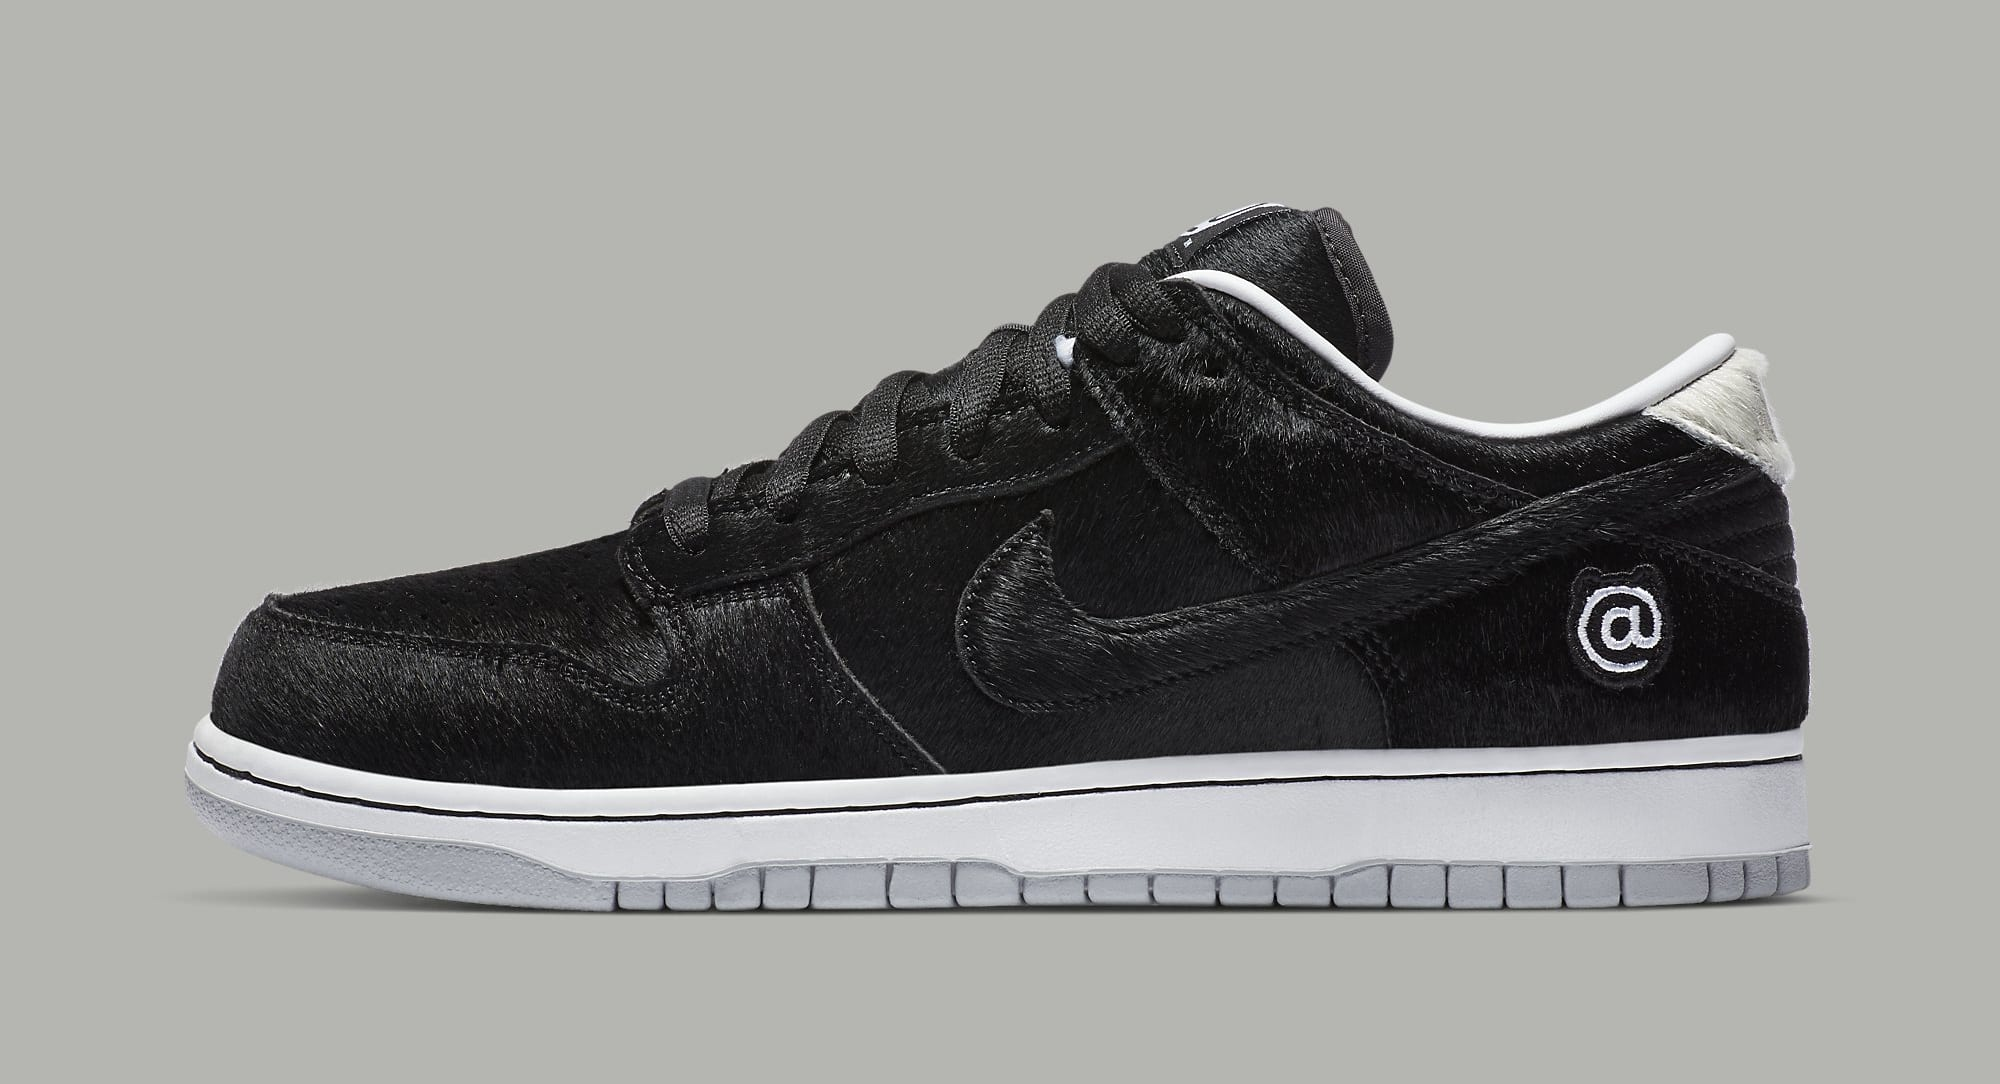 Medicom x Nike SB Dunk Low 'Bearbrick' CZ5127-001 Lateral